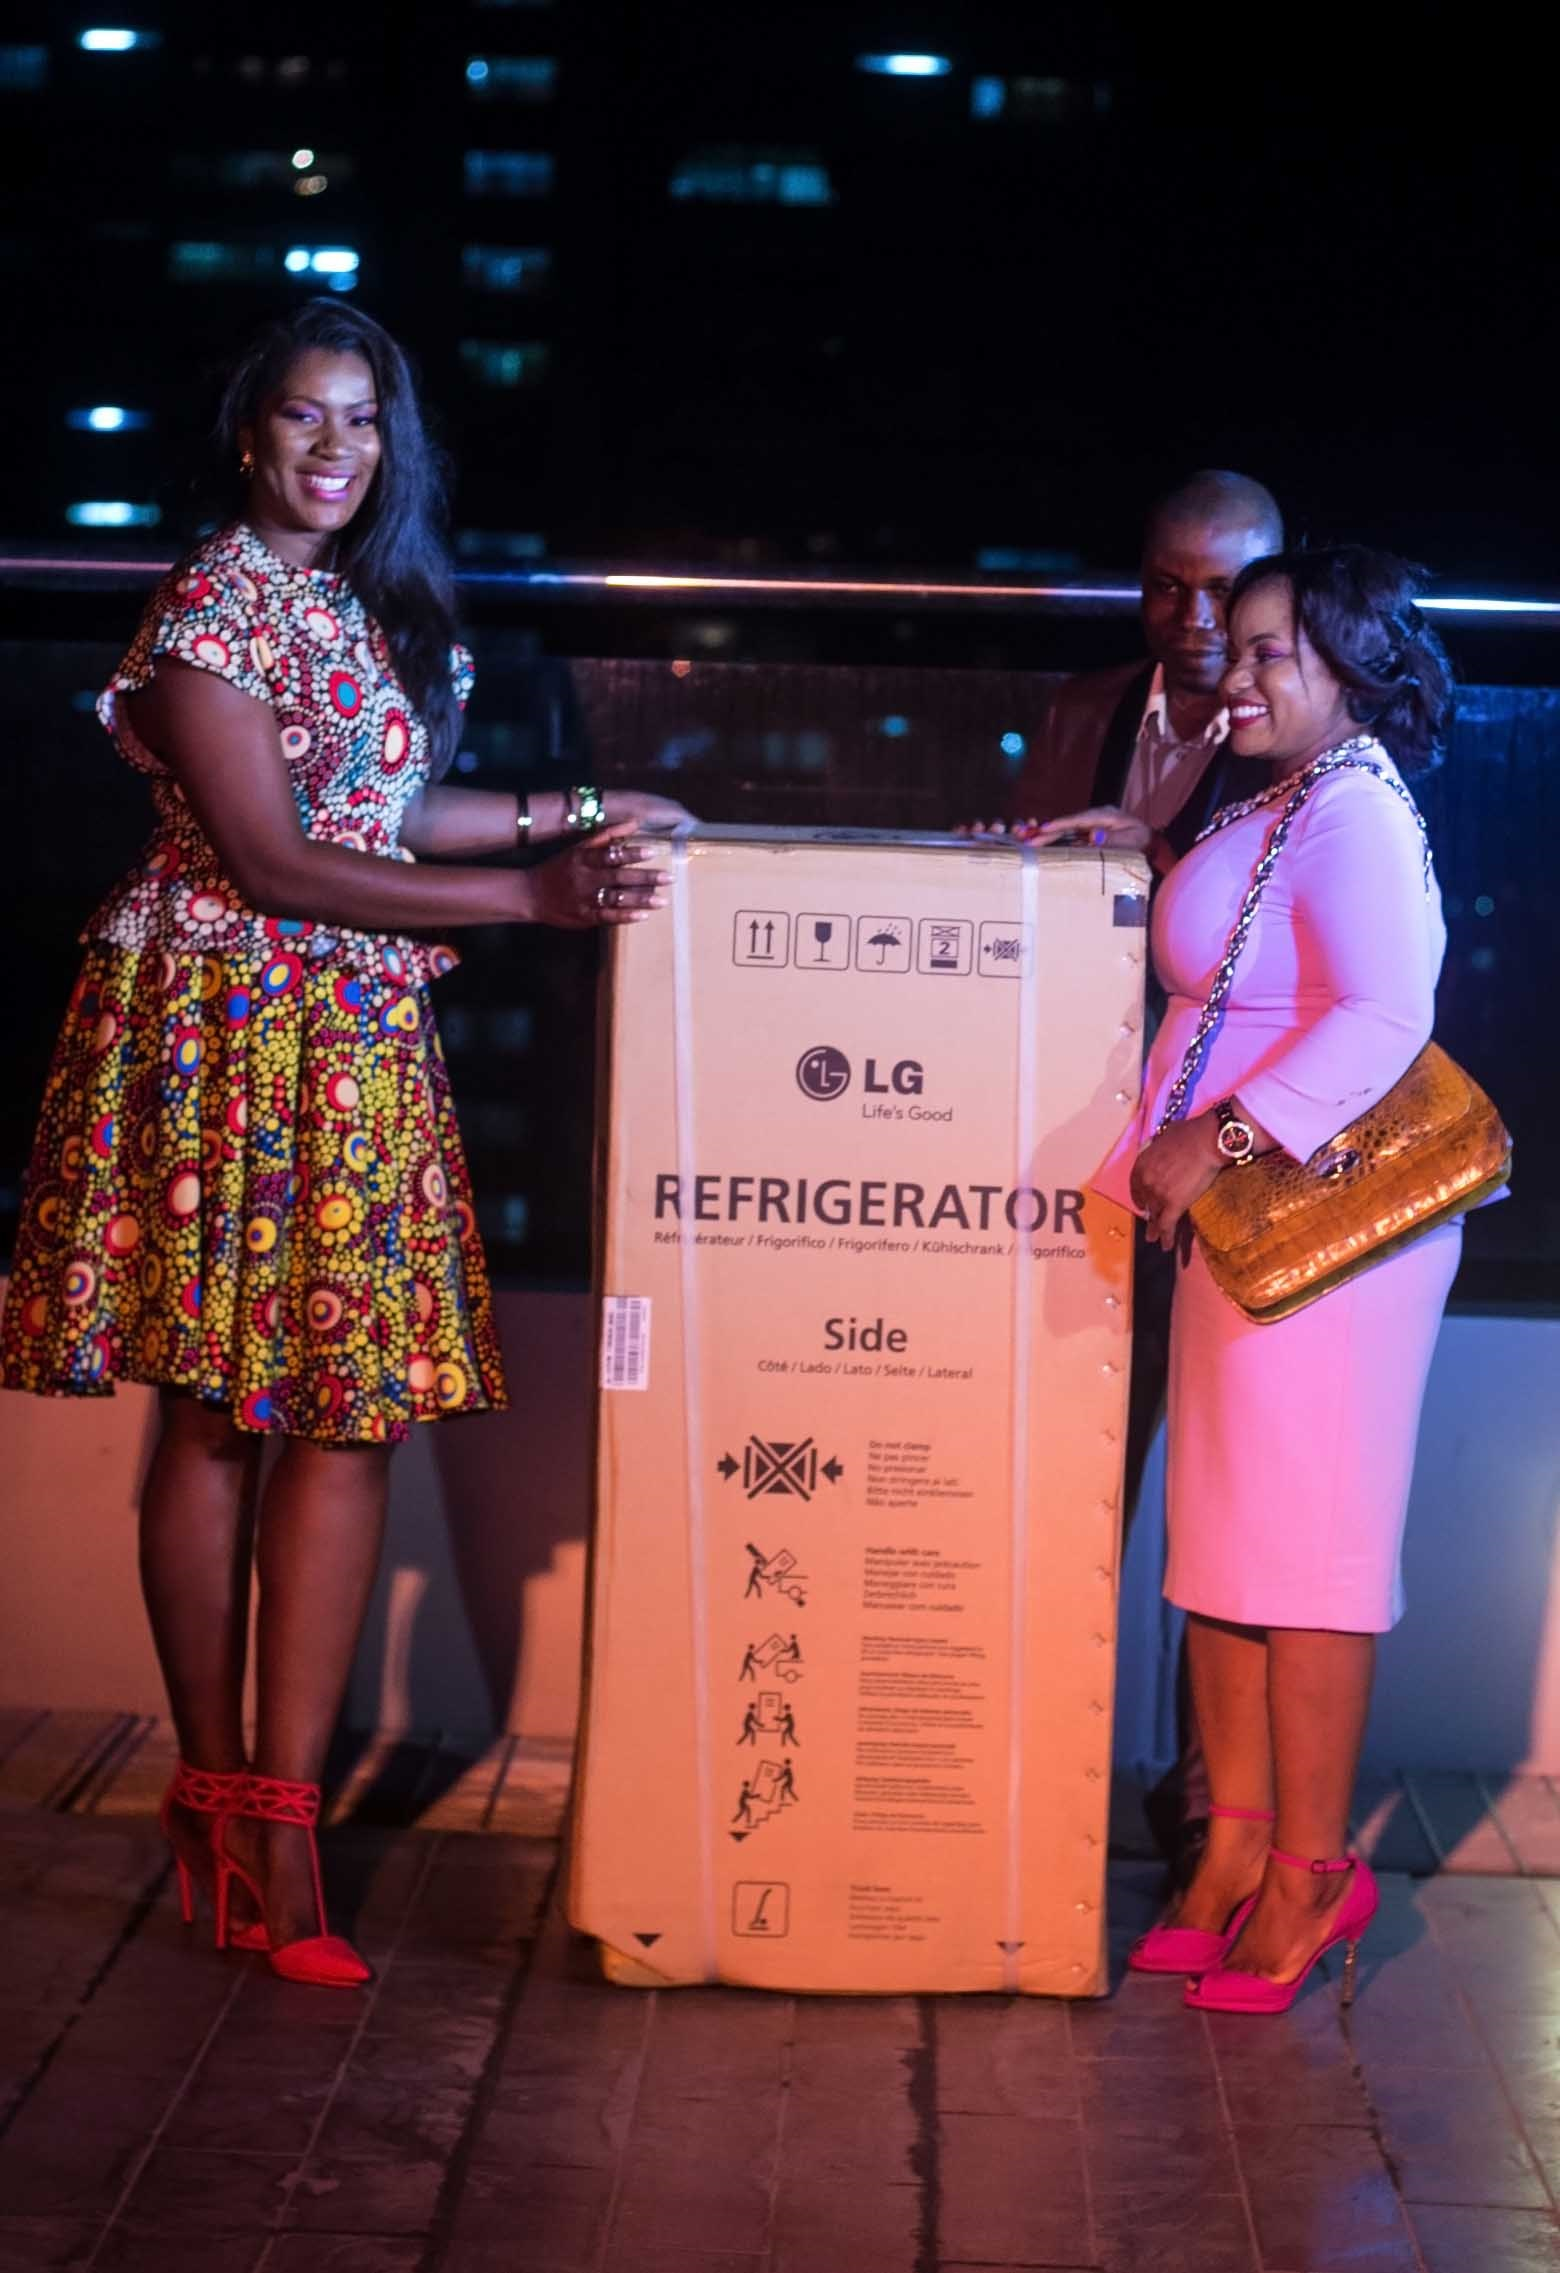 Many thanks to our sponsors, LG Nigeria, for the Refrigerator. They loved it!